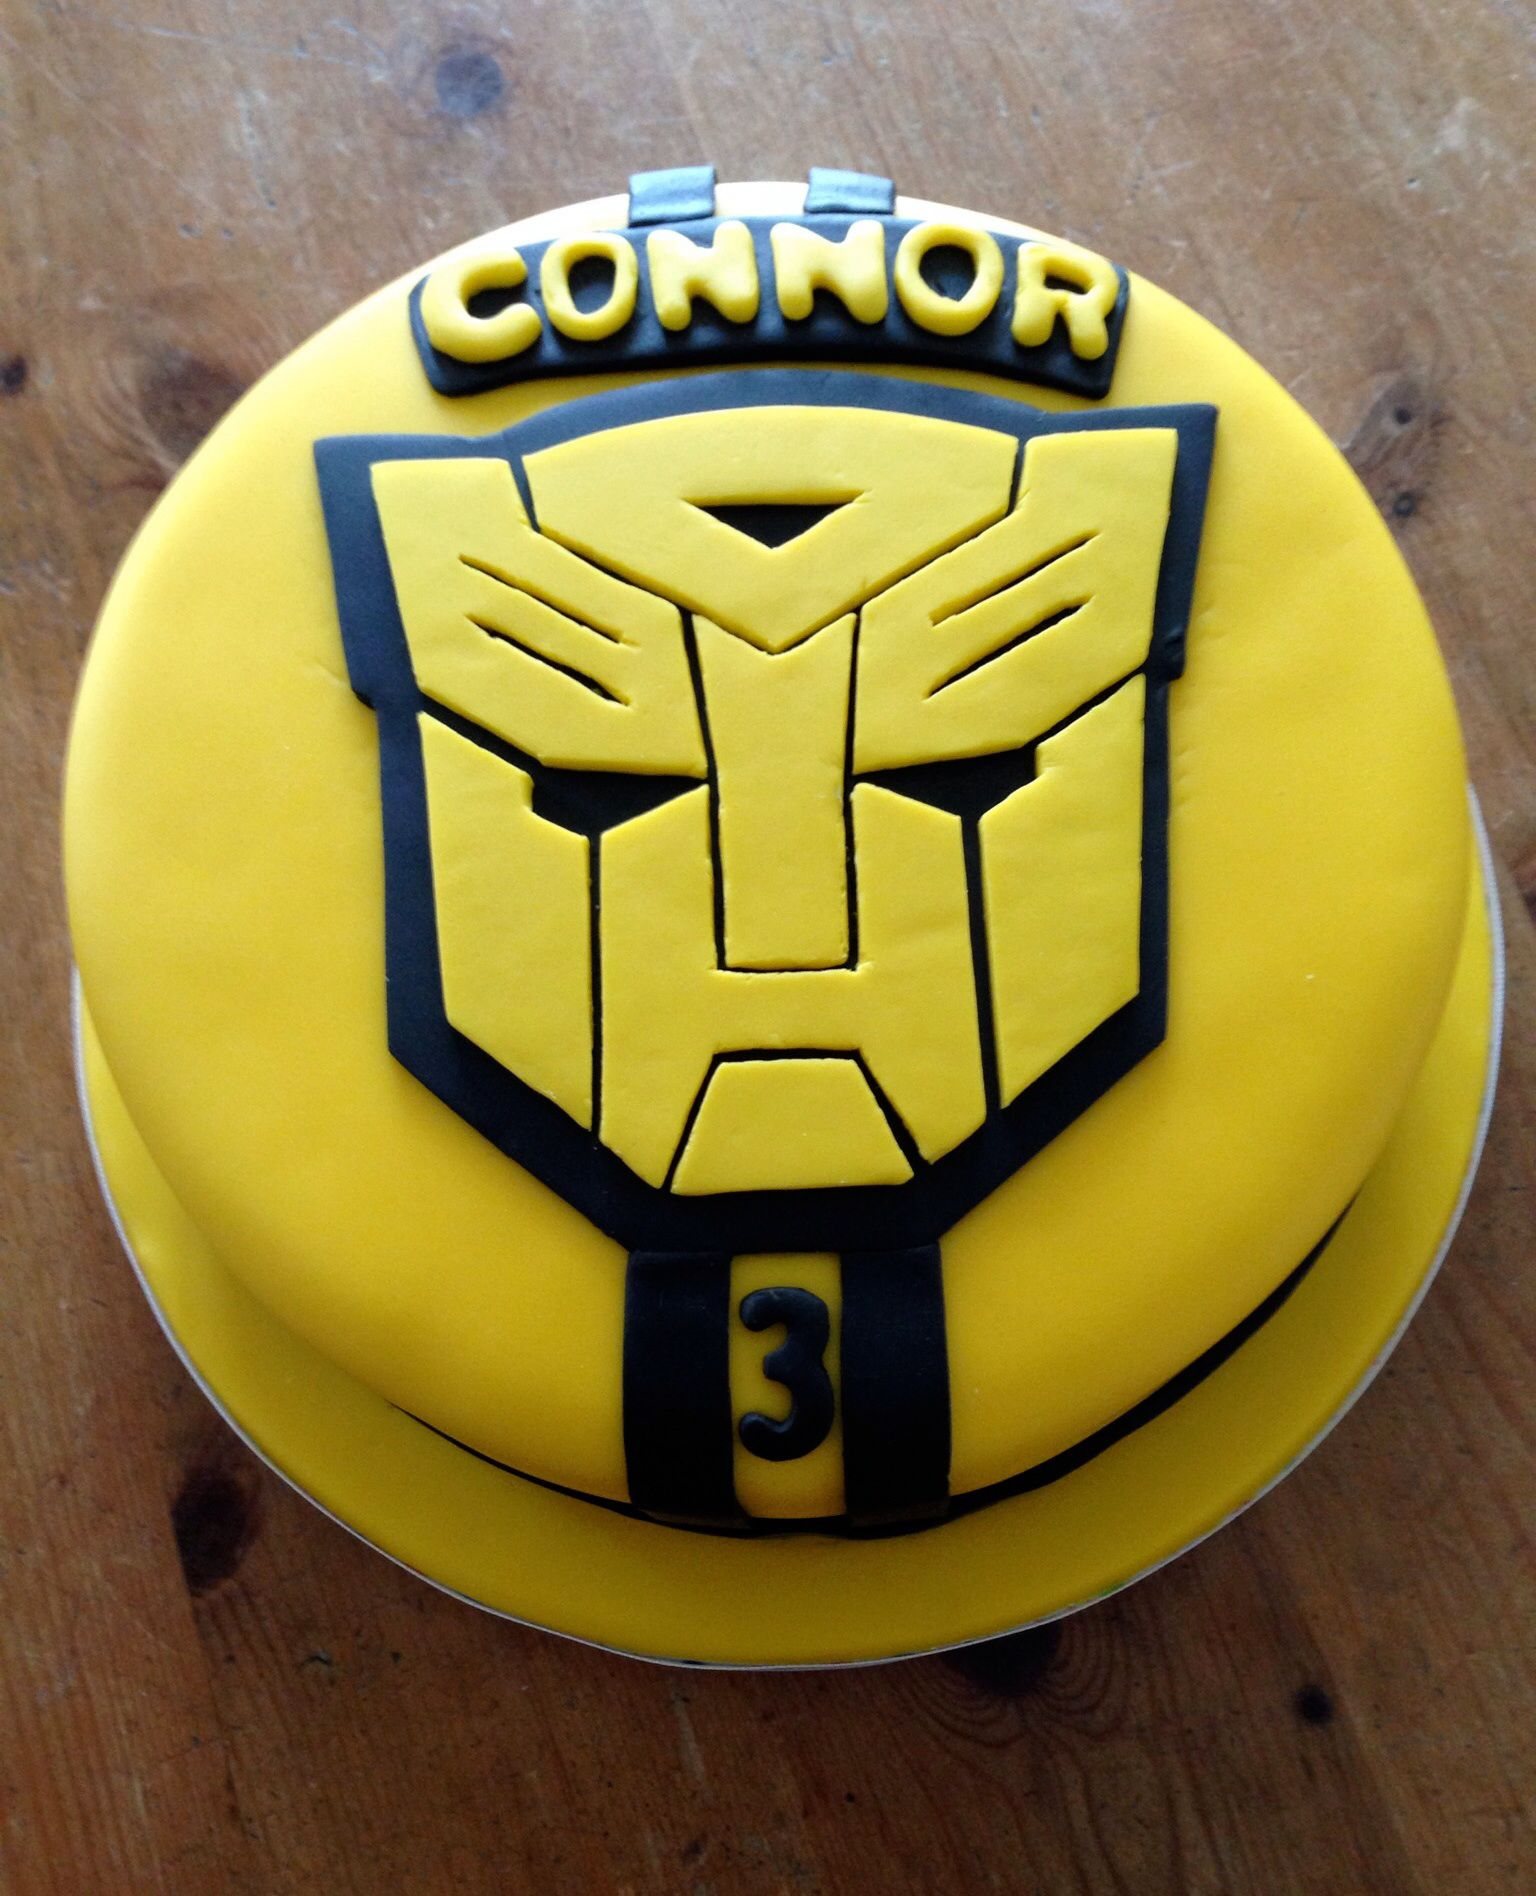 17 11 13 Bumblebee Transformer Birthday Cake